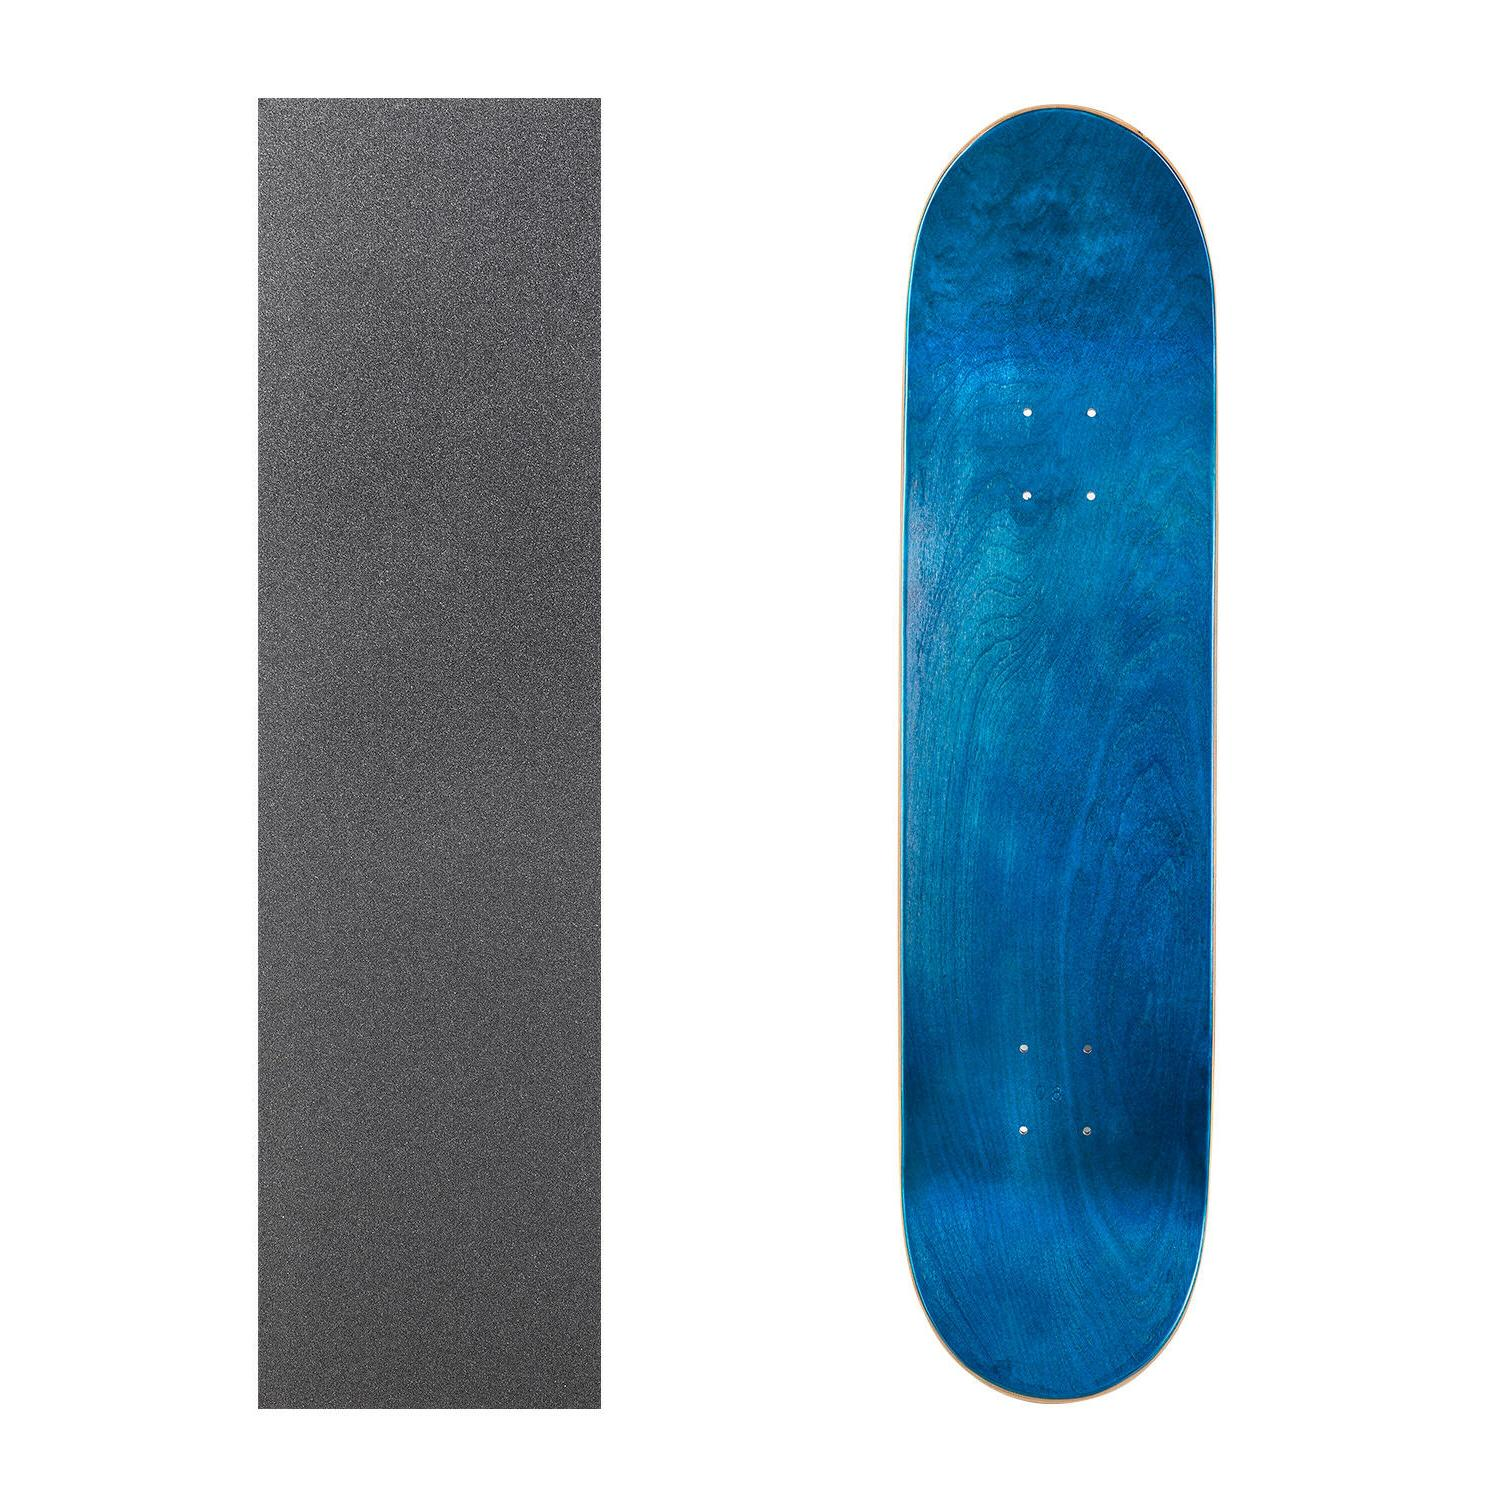 """Cal Blank Skateboard 8.25"""" with Grip Tape Multi-Colors Set"""